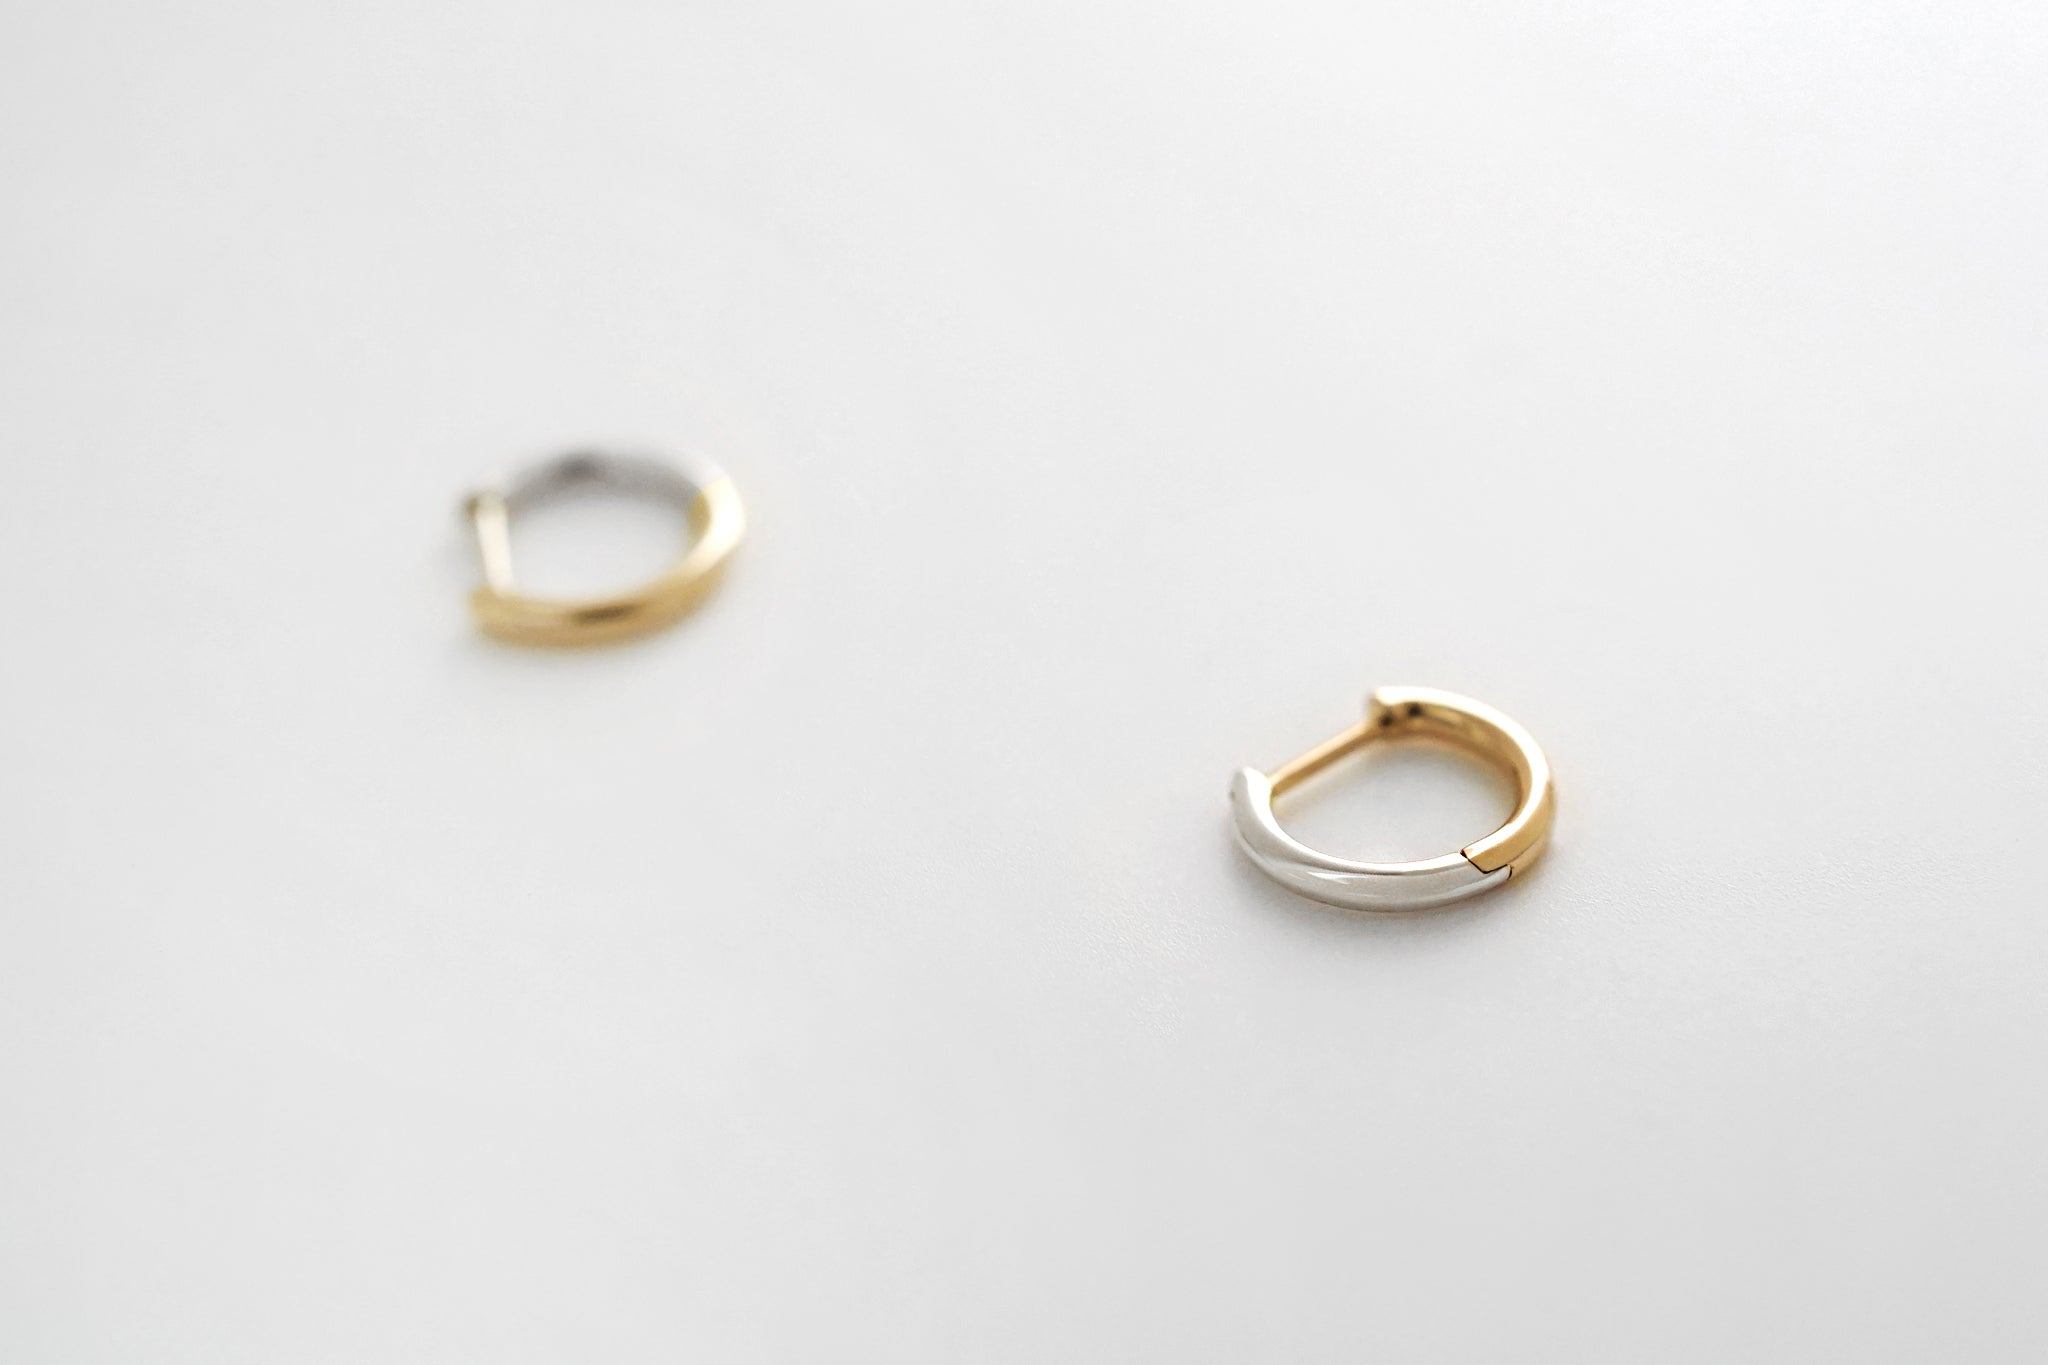 Two Tone Small Hoop Earrings - Yellow/White Gold